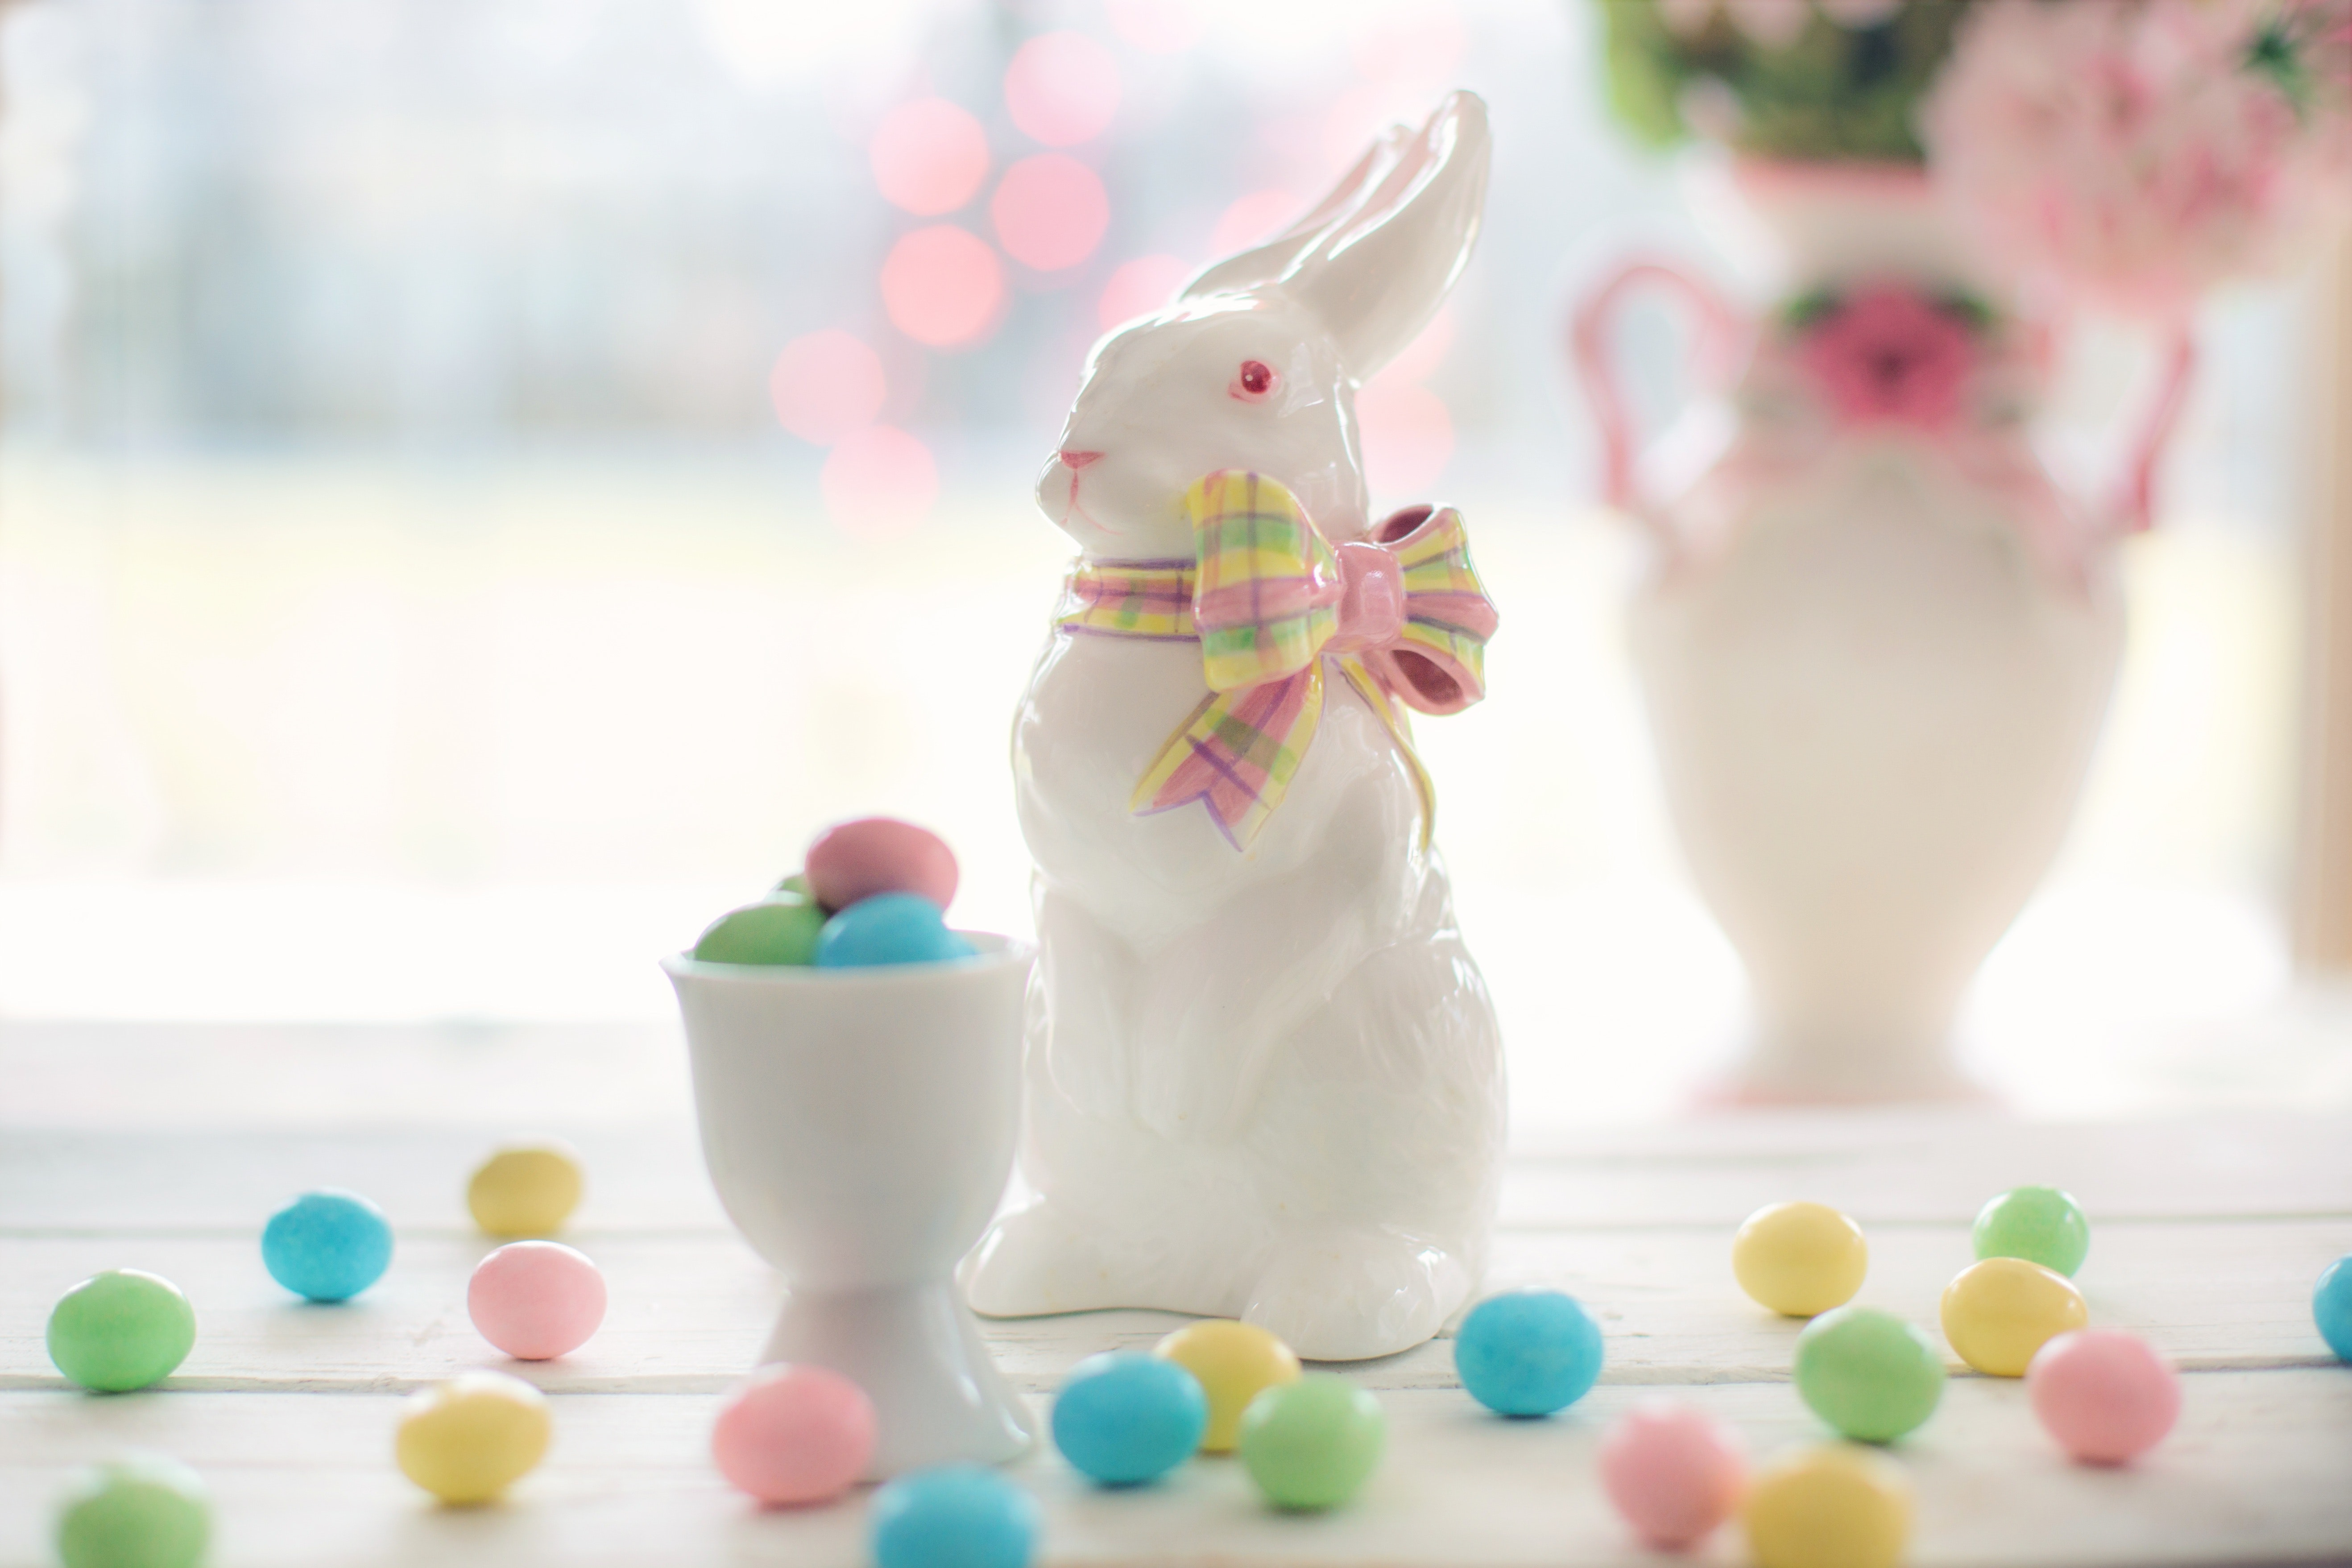 Little easter eggs scattered all over the table and inside a white ceramic.